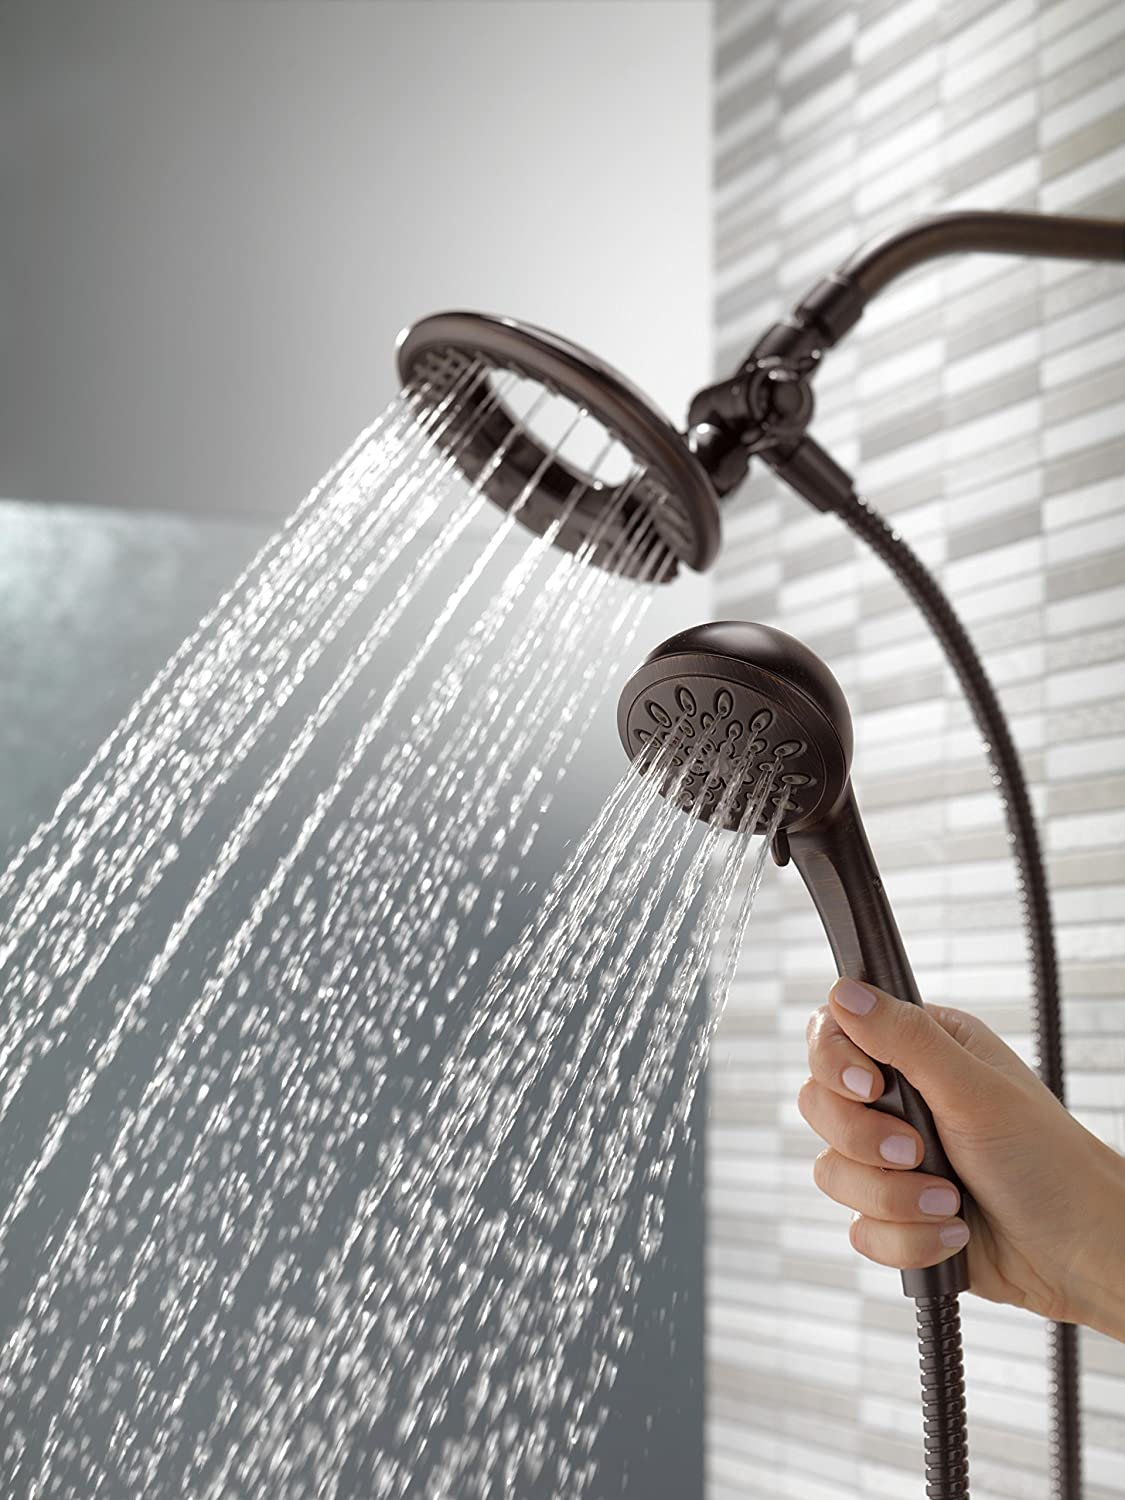 Delta 4-Spray Touch Clean In2ition 2-in-1 Hand Held Shower Head with Hose, Venetian Bronze (58065-RB) Delta Faucet